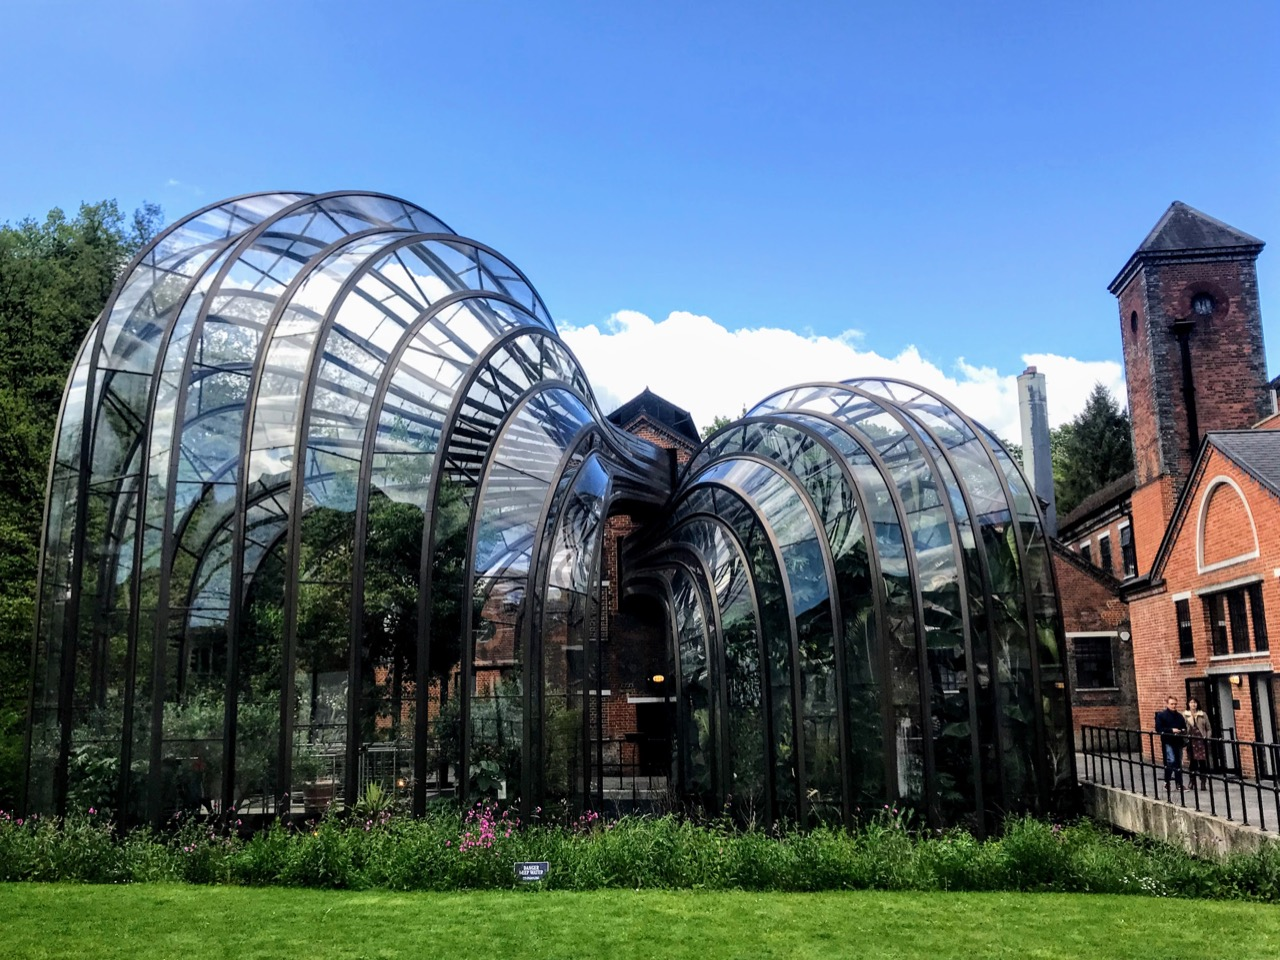 Planning a Bombay Sapphire Distillery Tour at Laverstoke Mill - Glass houses